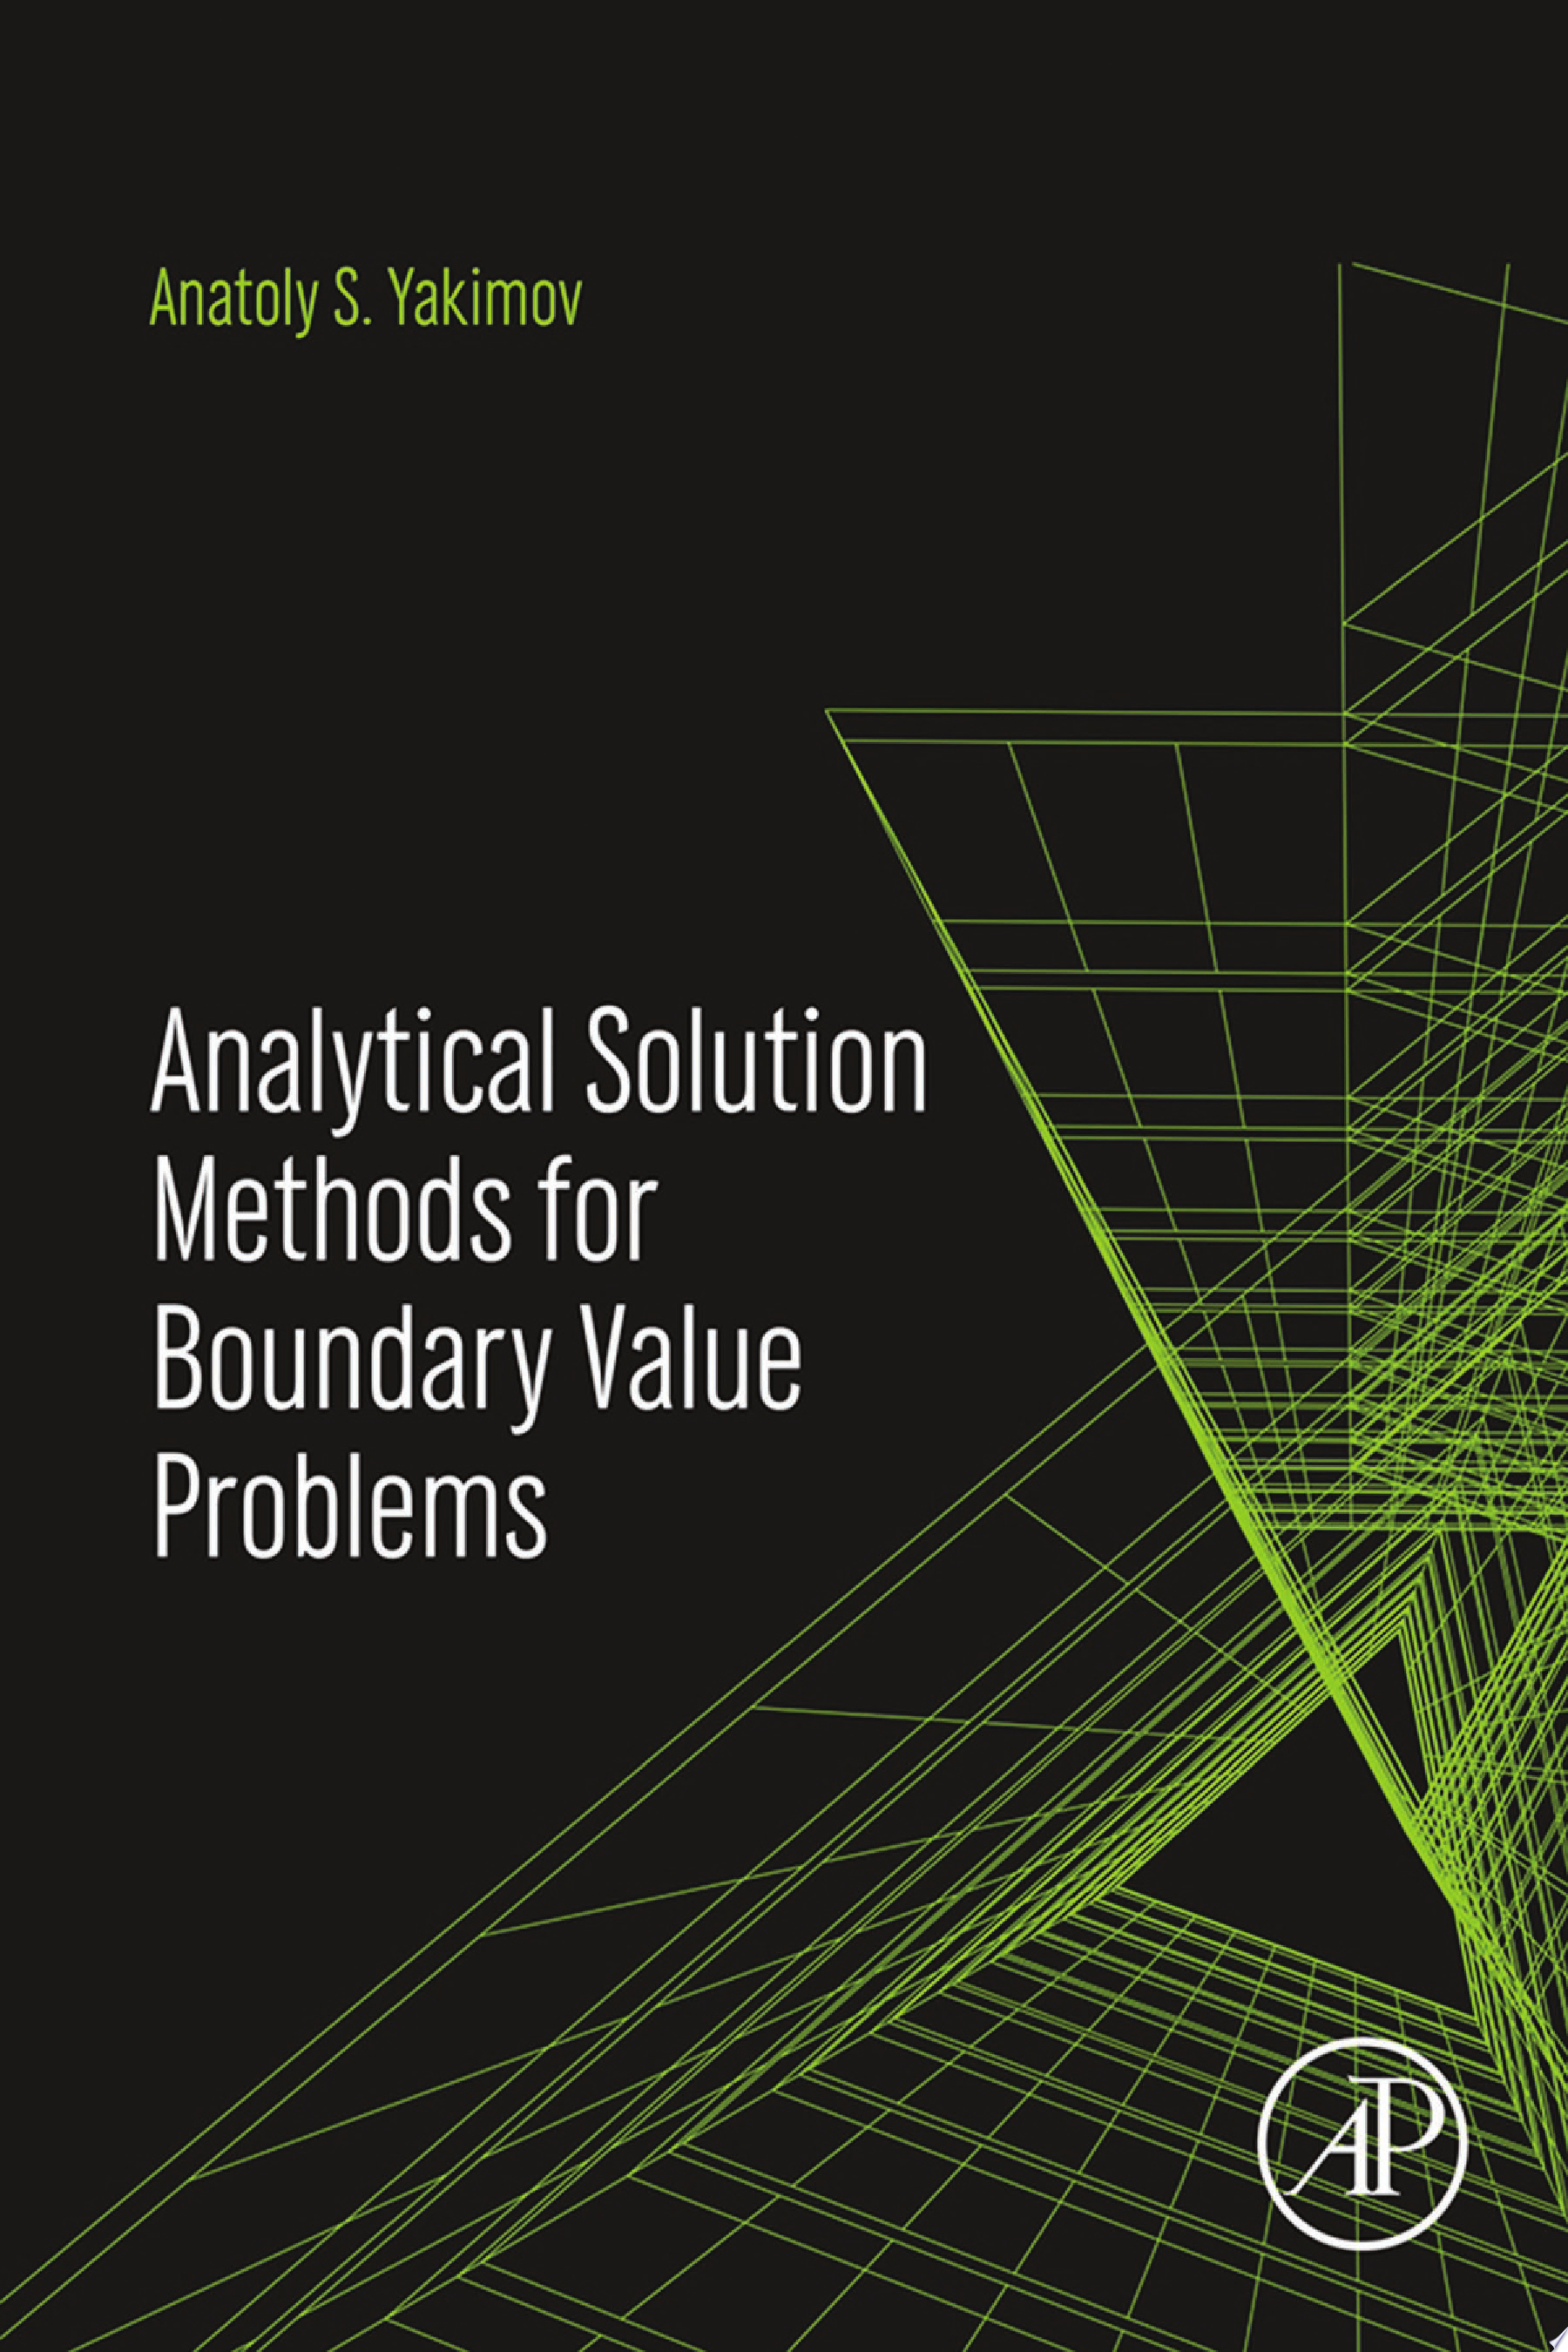 Analytical Solution Methods for Boundary Value Problems